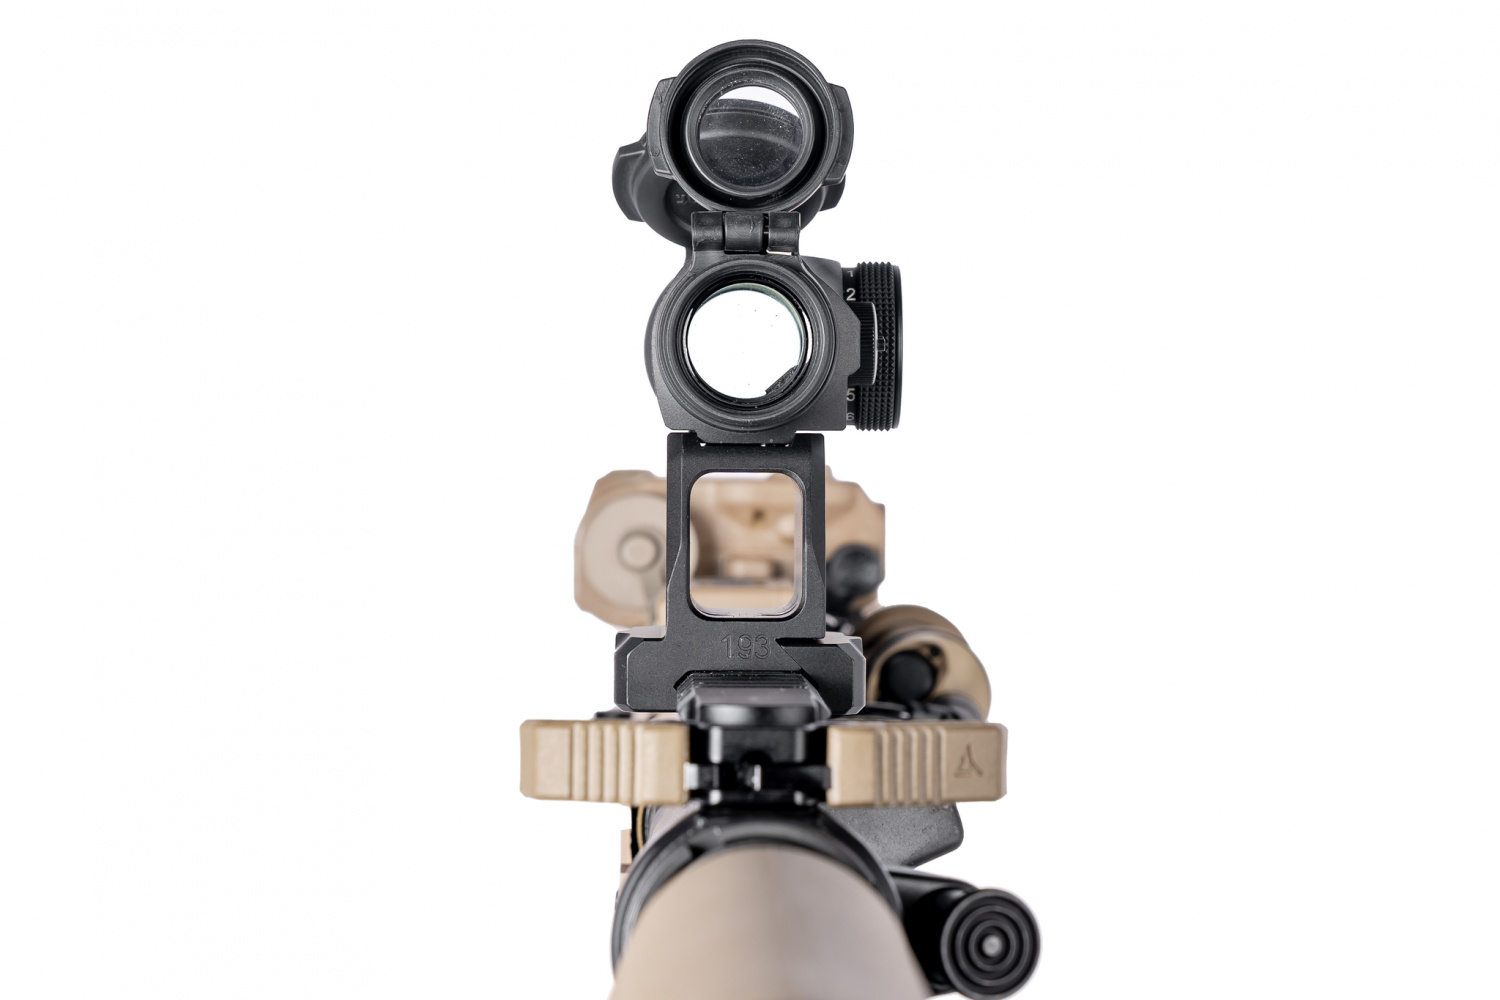 Just Released: The Arisaka Aimpoint Micro Mount